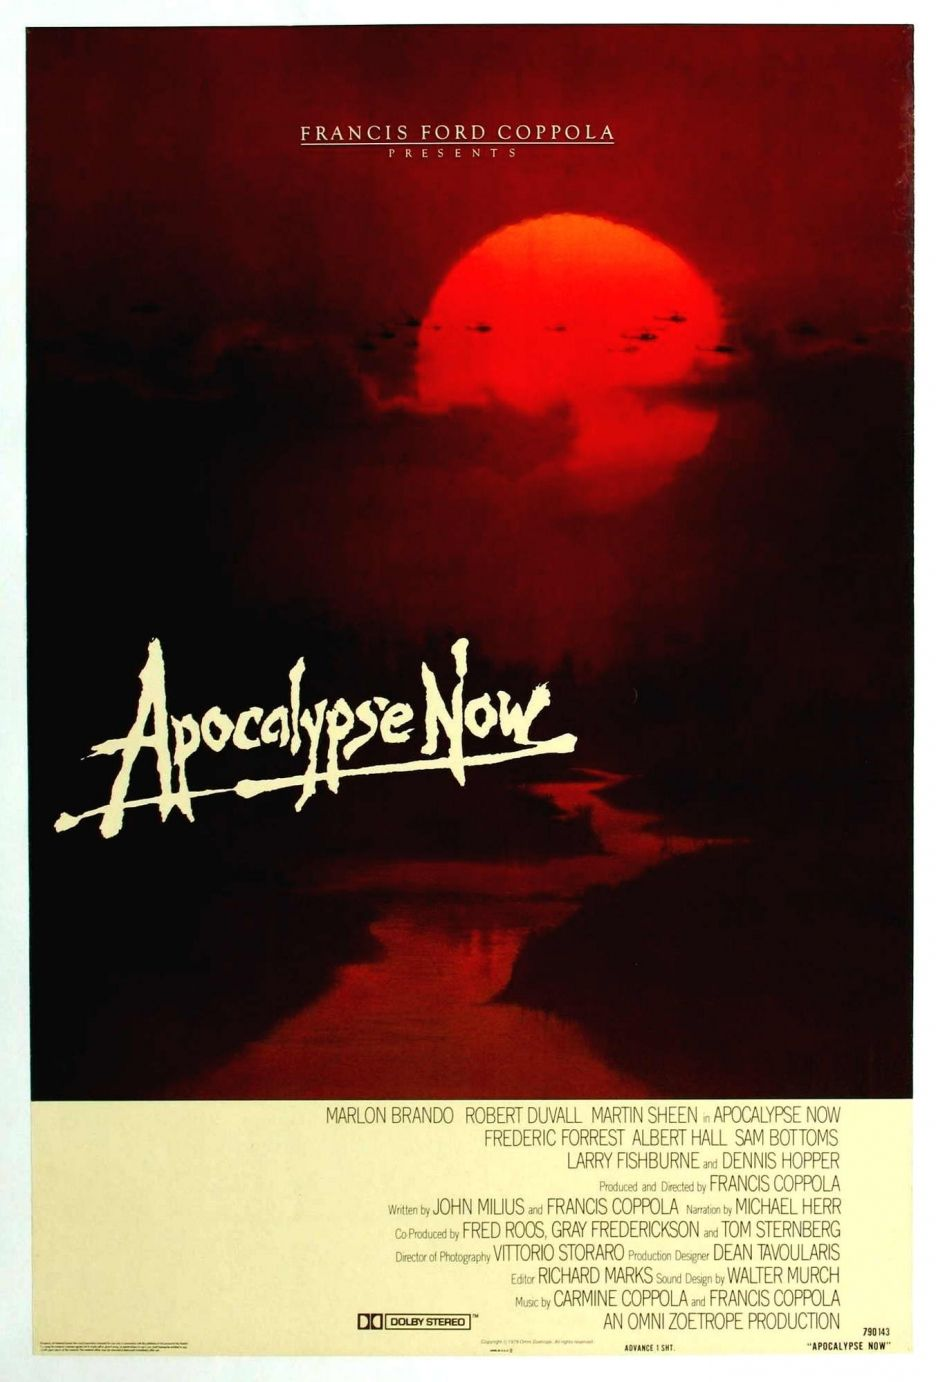 the similarities of plots setting and characters of heart of darkness and apocalypse now Season 4, episode 2: arkangel this episode has the best setup of any black  mirror,  we know so little about our characters, or the menacing little robotic  doggies chasing  it's brilliantly plotted and paced, and the ultimate prank is on  you  season 3, episode 4: san junipero hard sci-fi with heart.